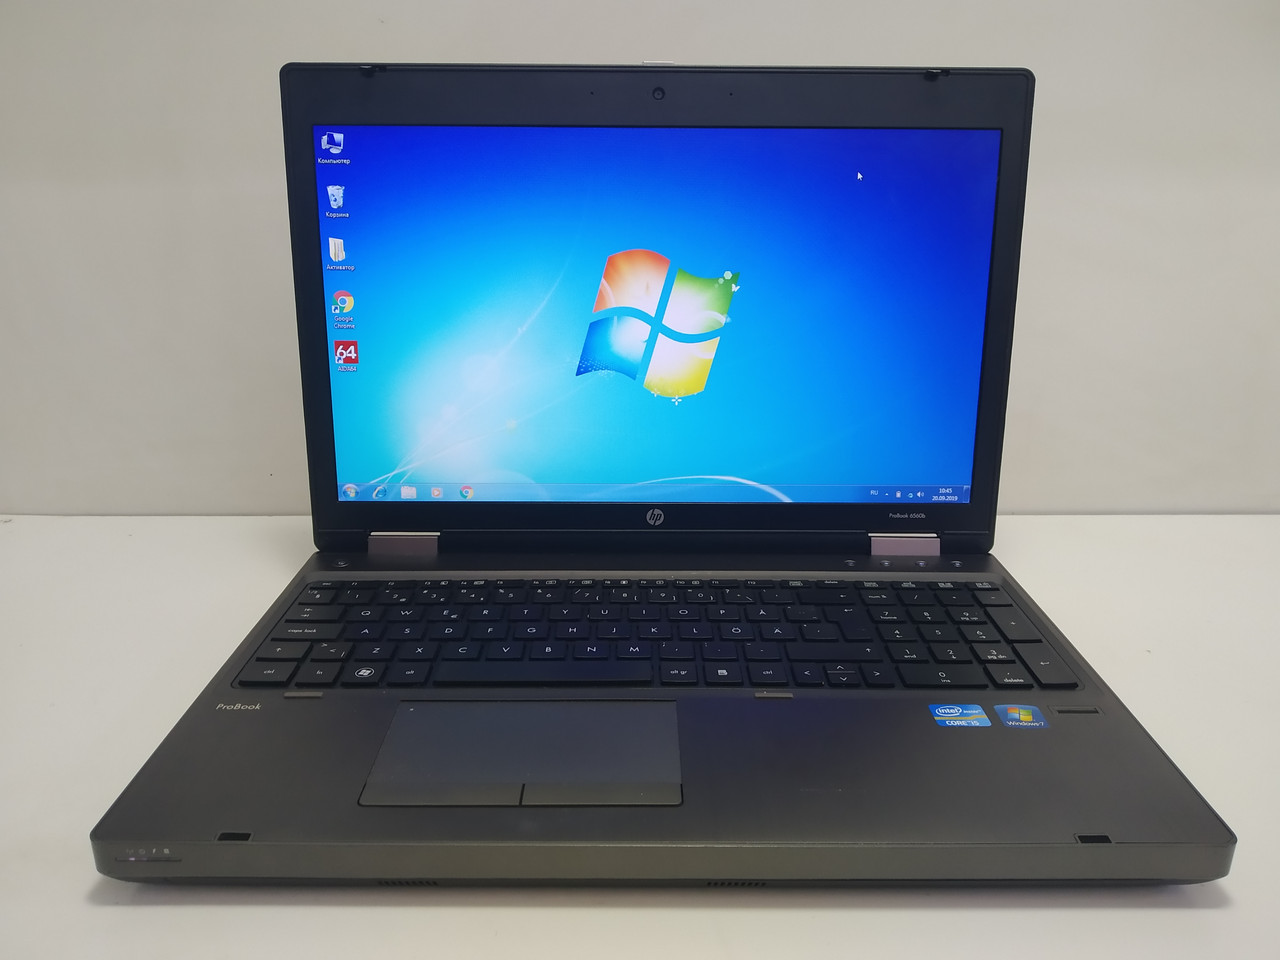 "15.6"" HP Probook 6560b \ Intel i5 2410m 4gb\ 320gb comport Бат до 4\ НЕ США\ Металл"